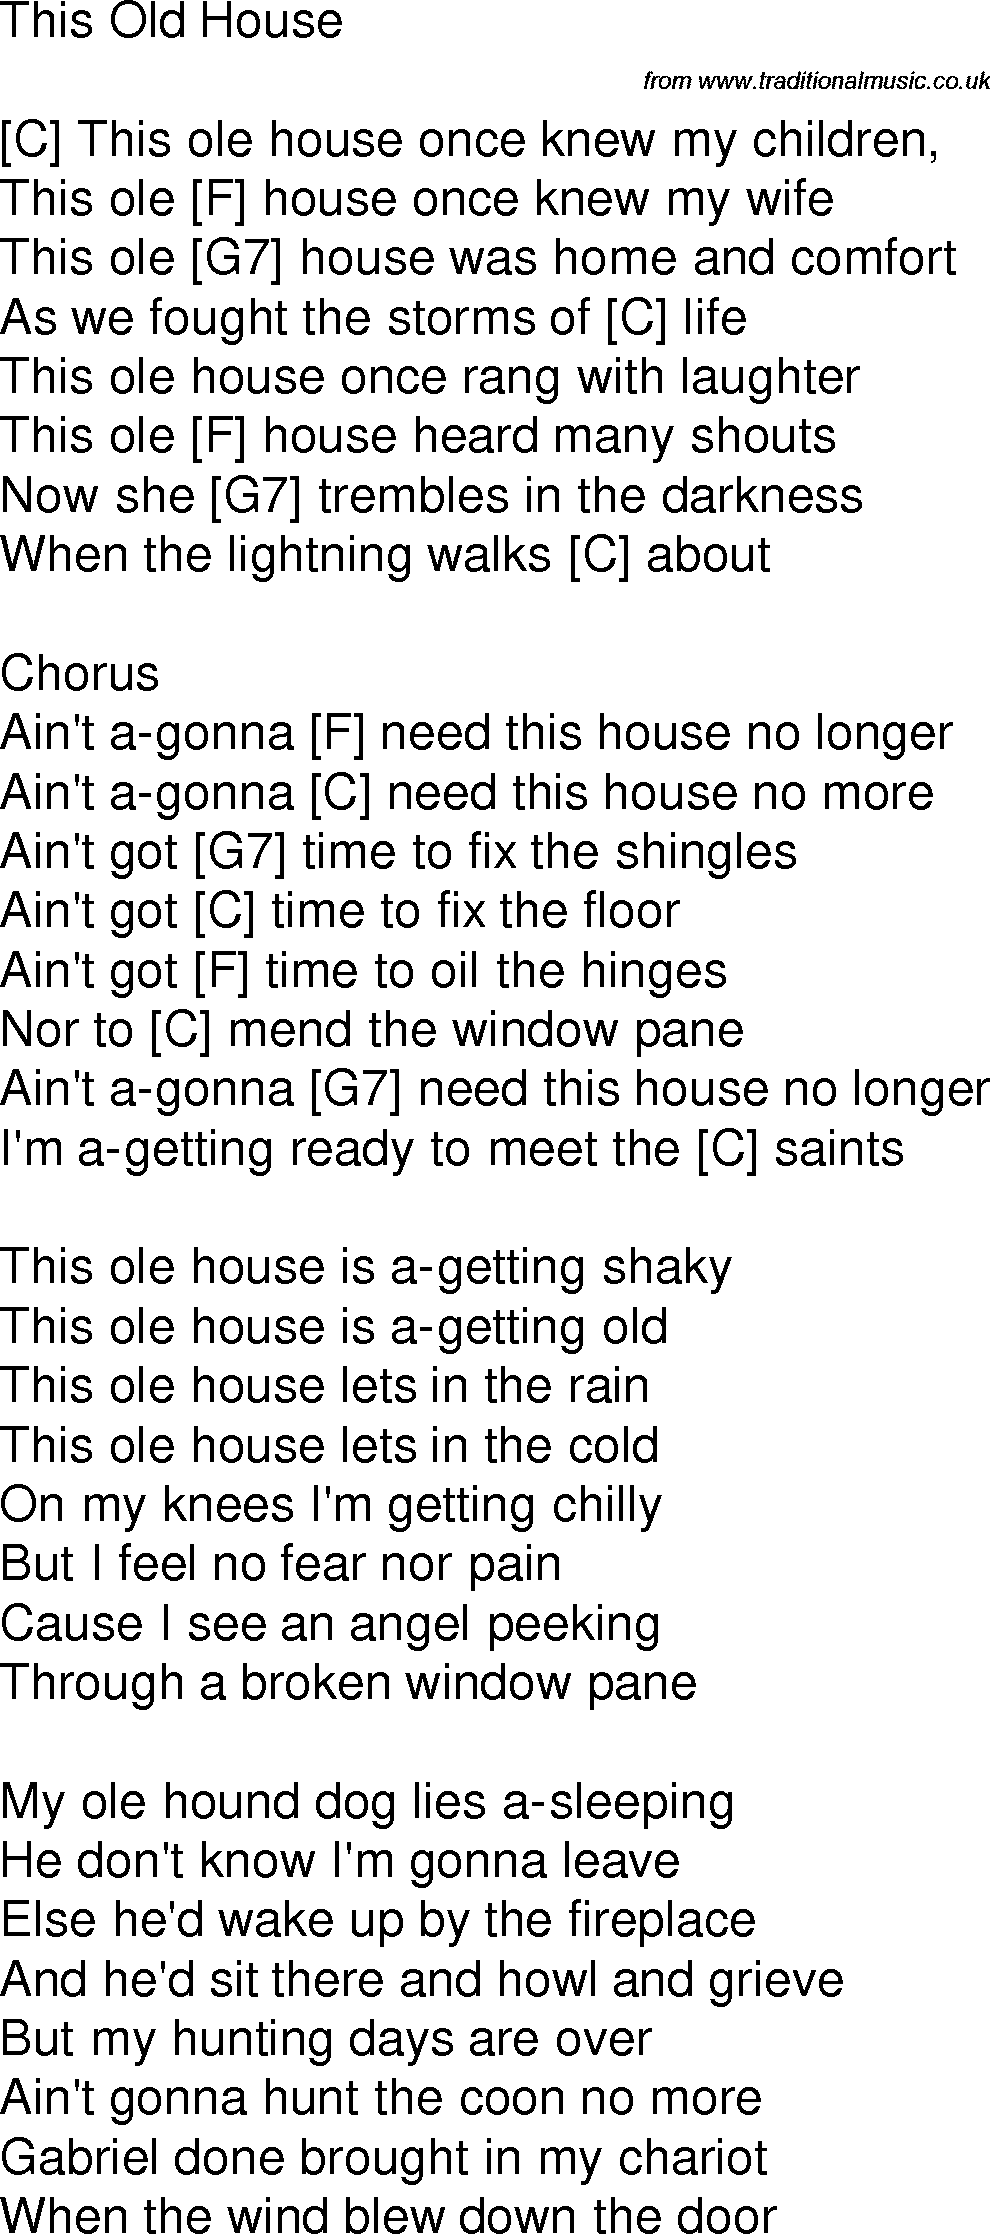 Old Time Song Lyrics With Chords For This Old House C David A Bass